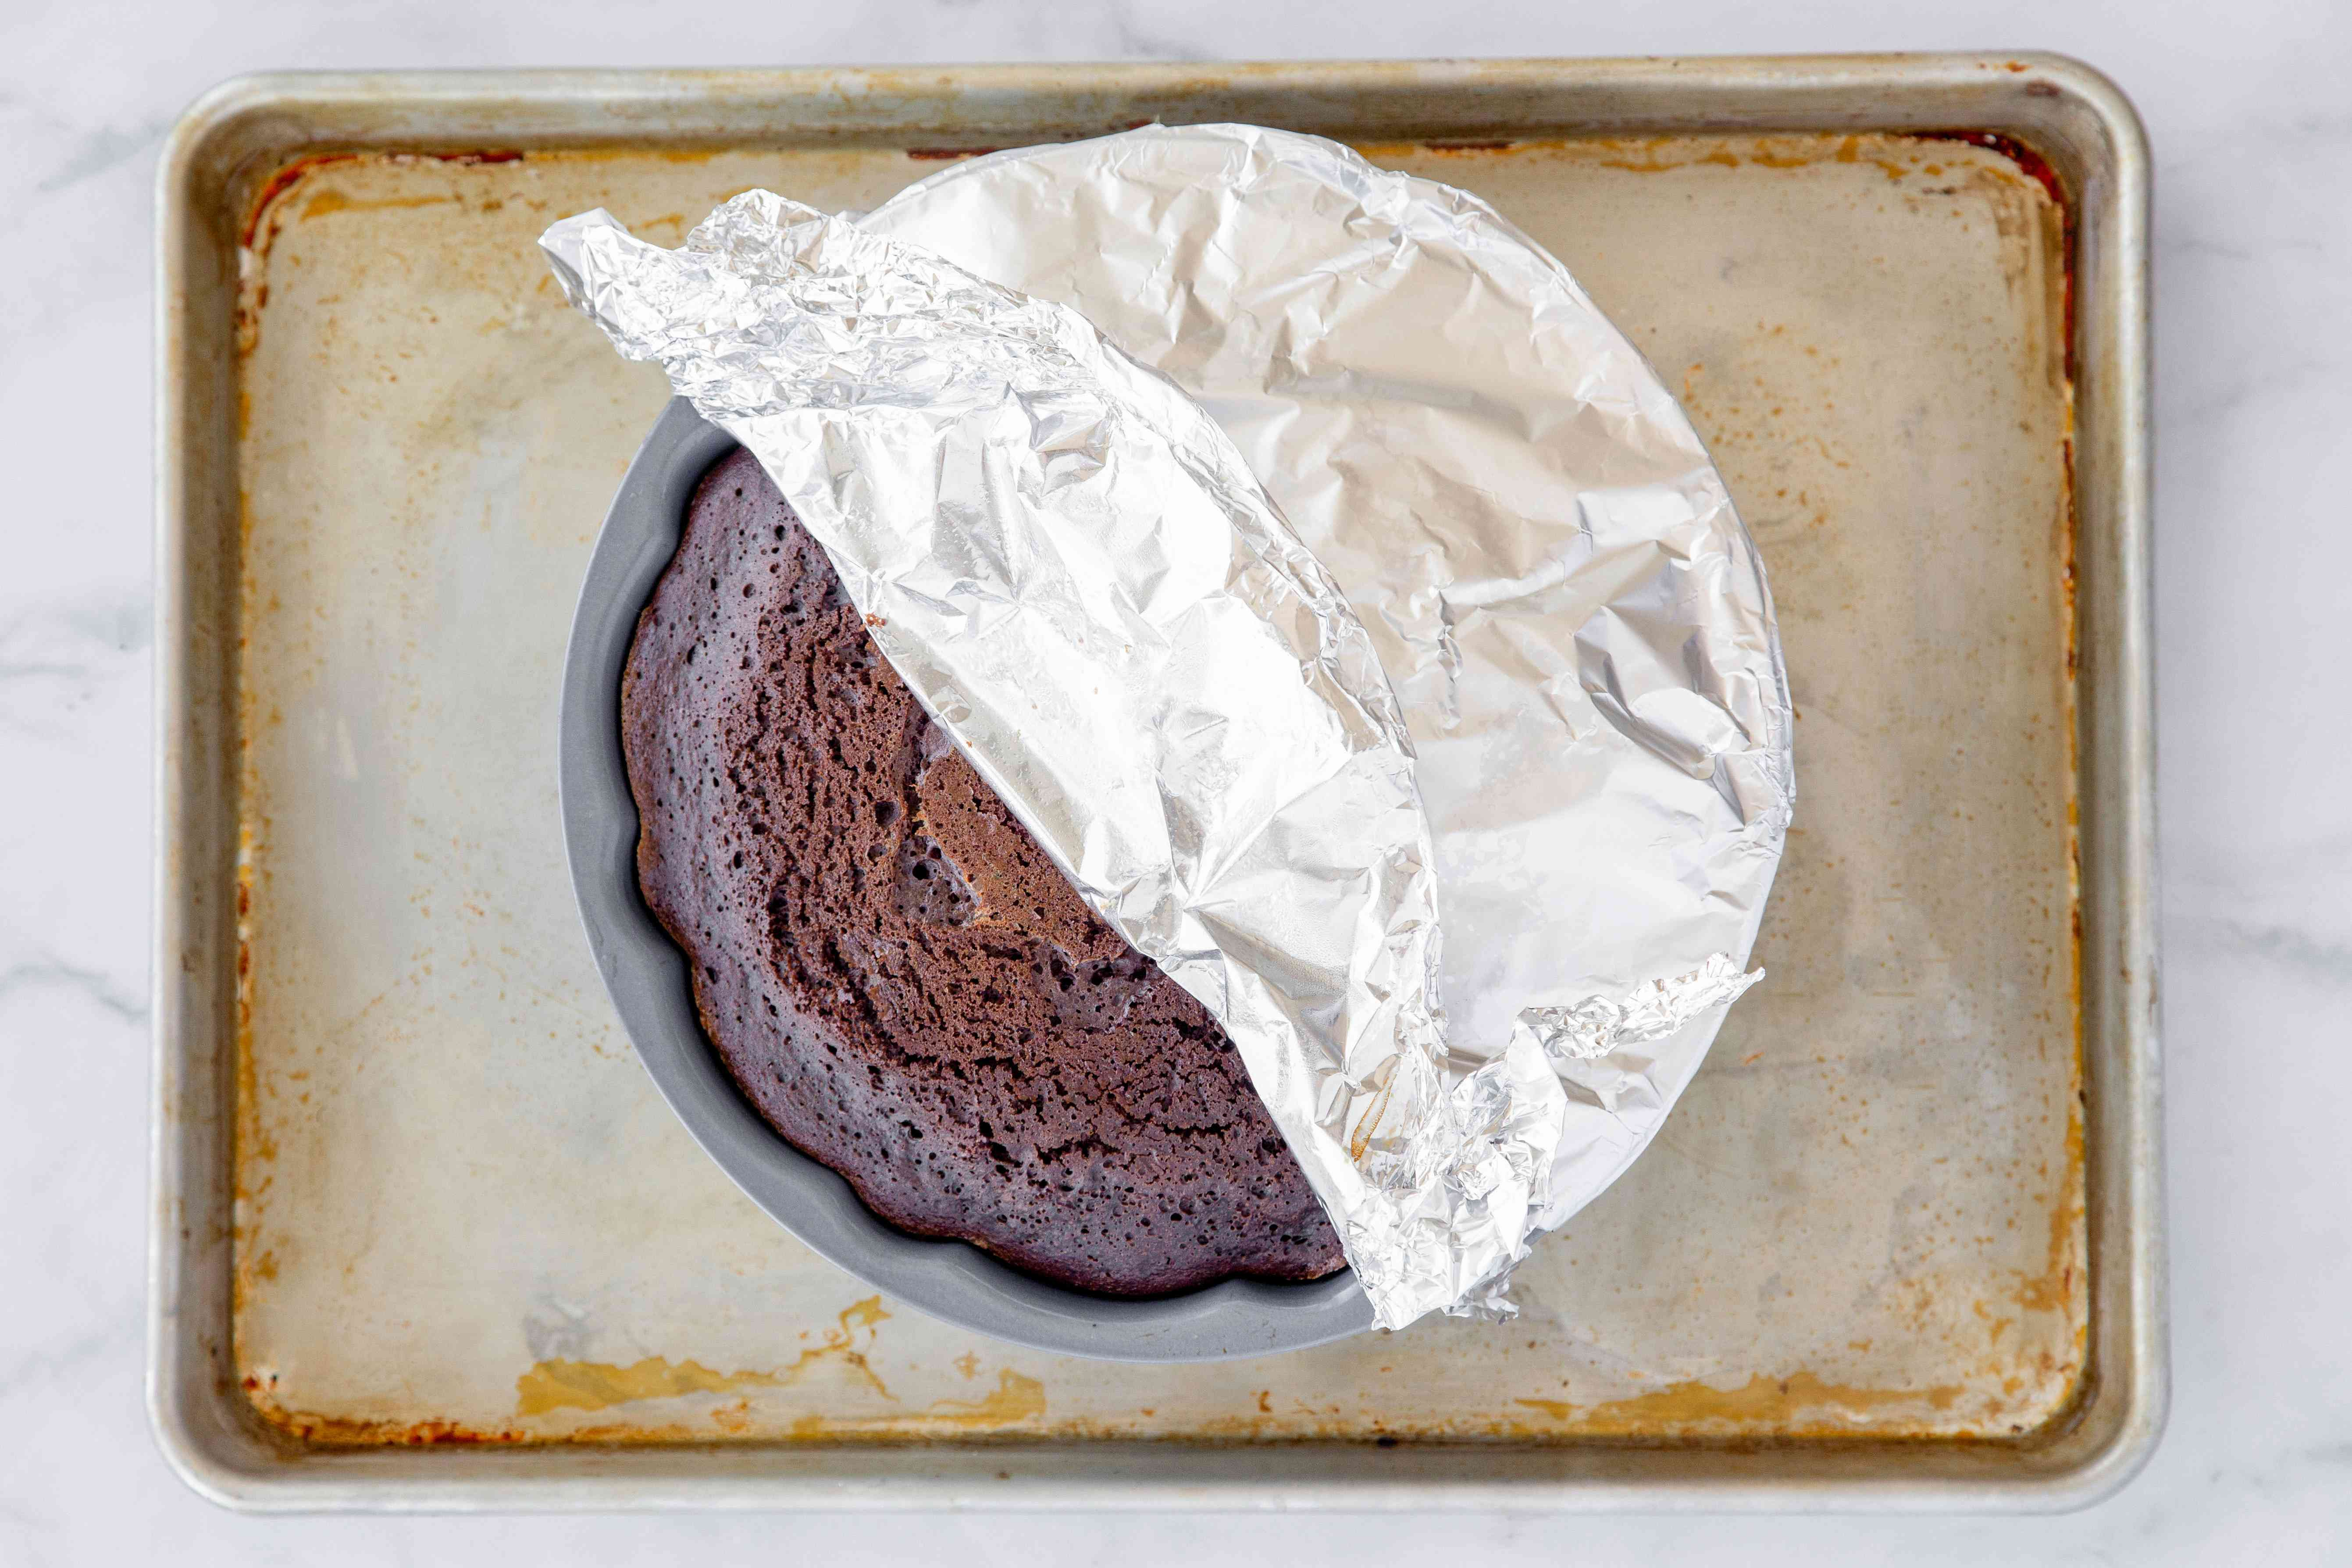 baked cake in a bunt pan covered with aluminum foil on a baking sheet